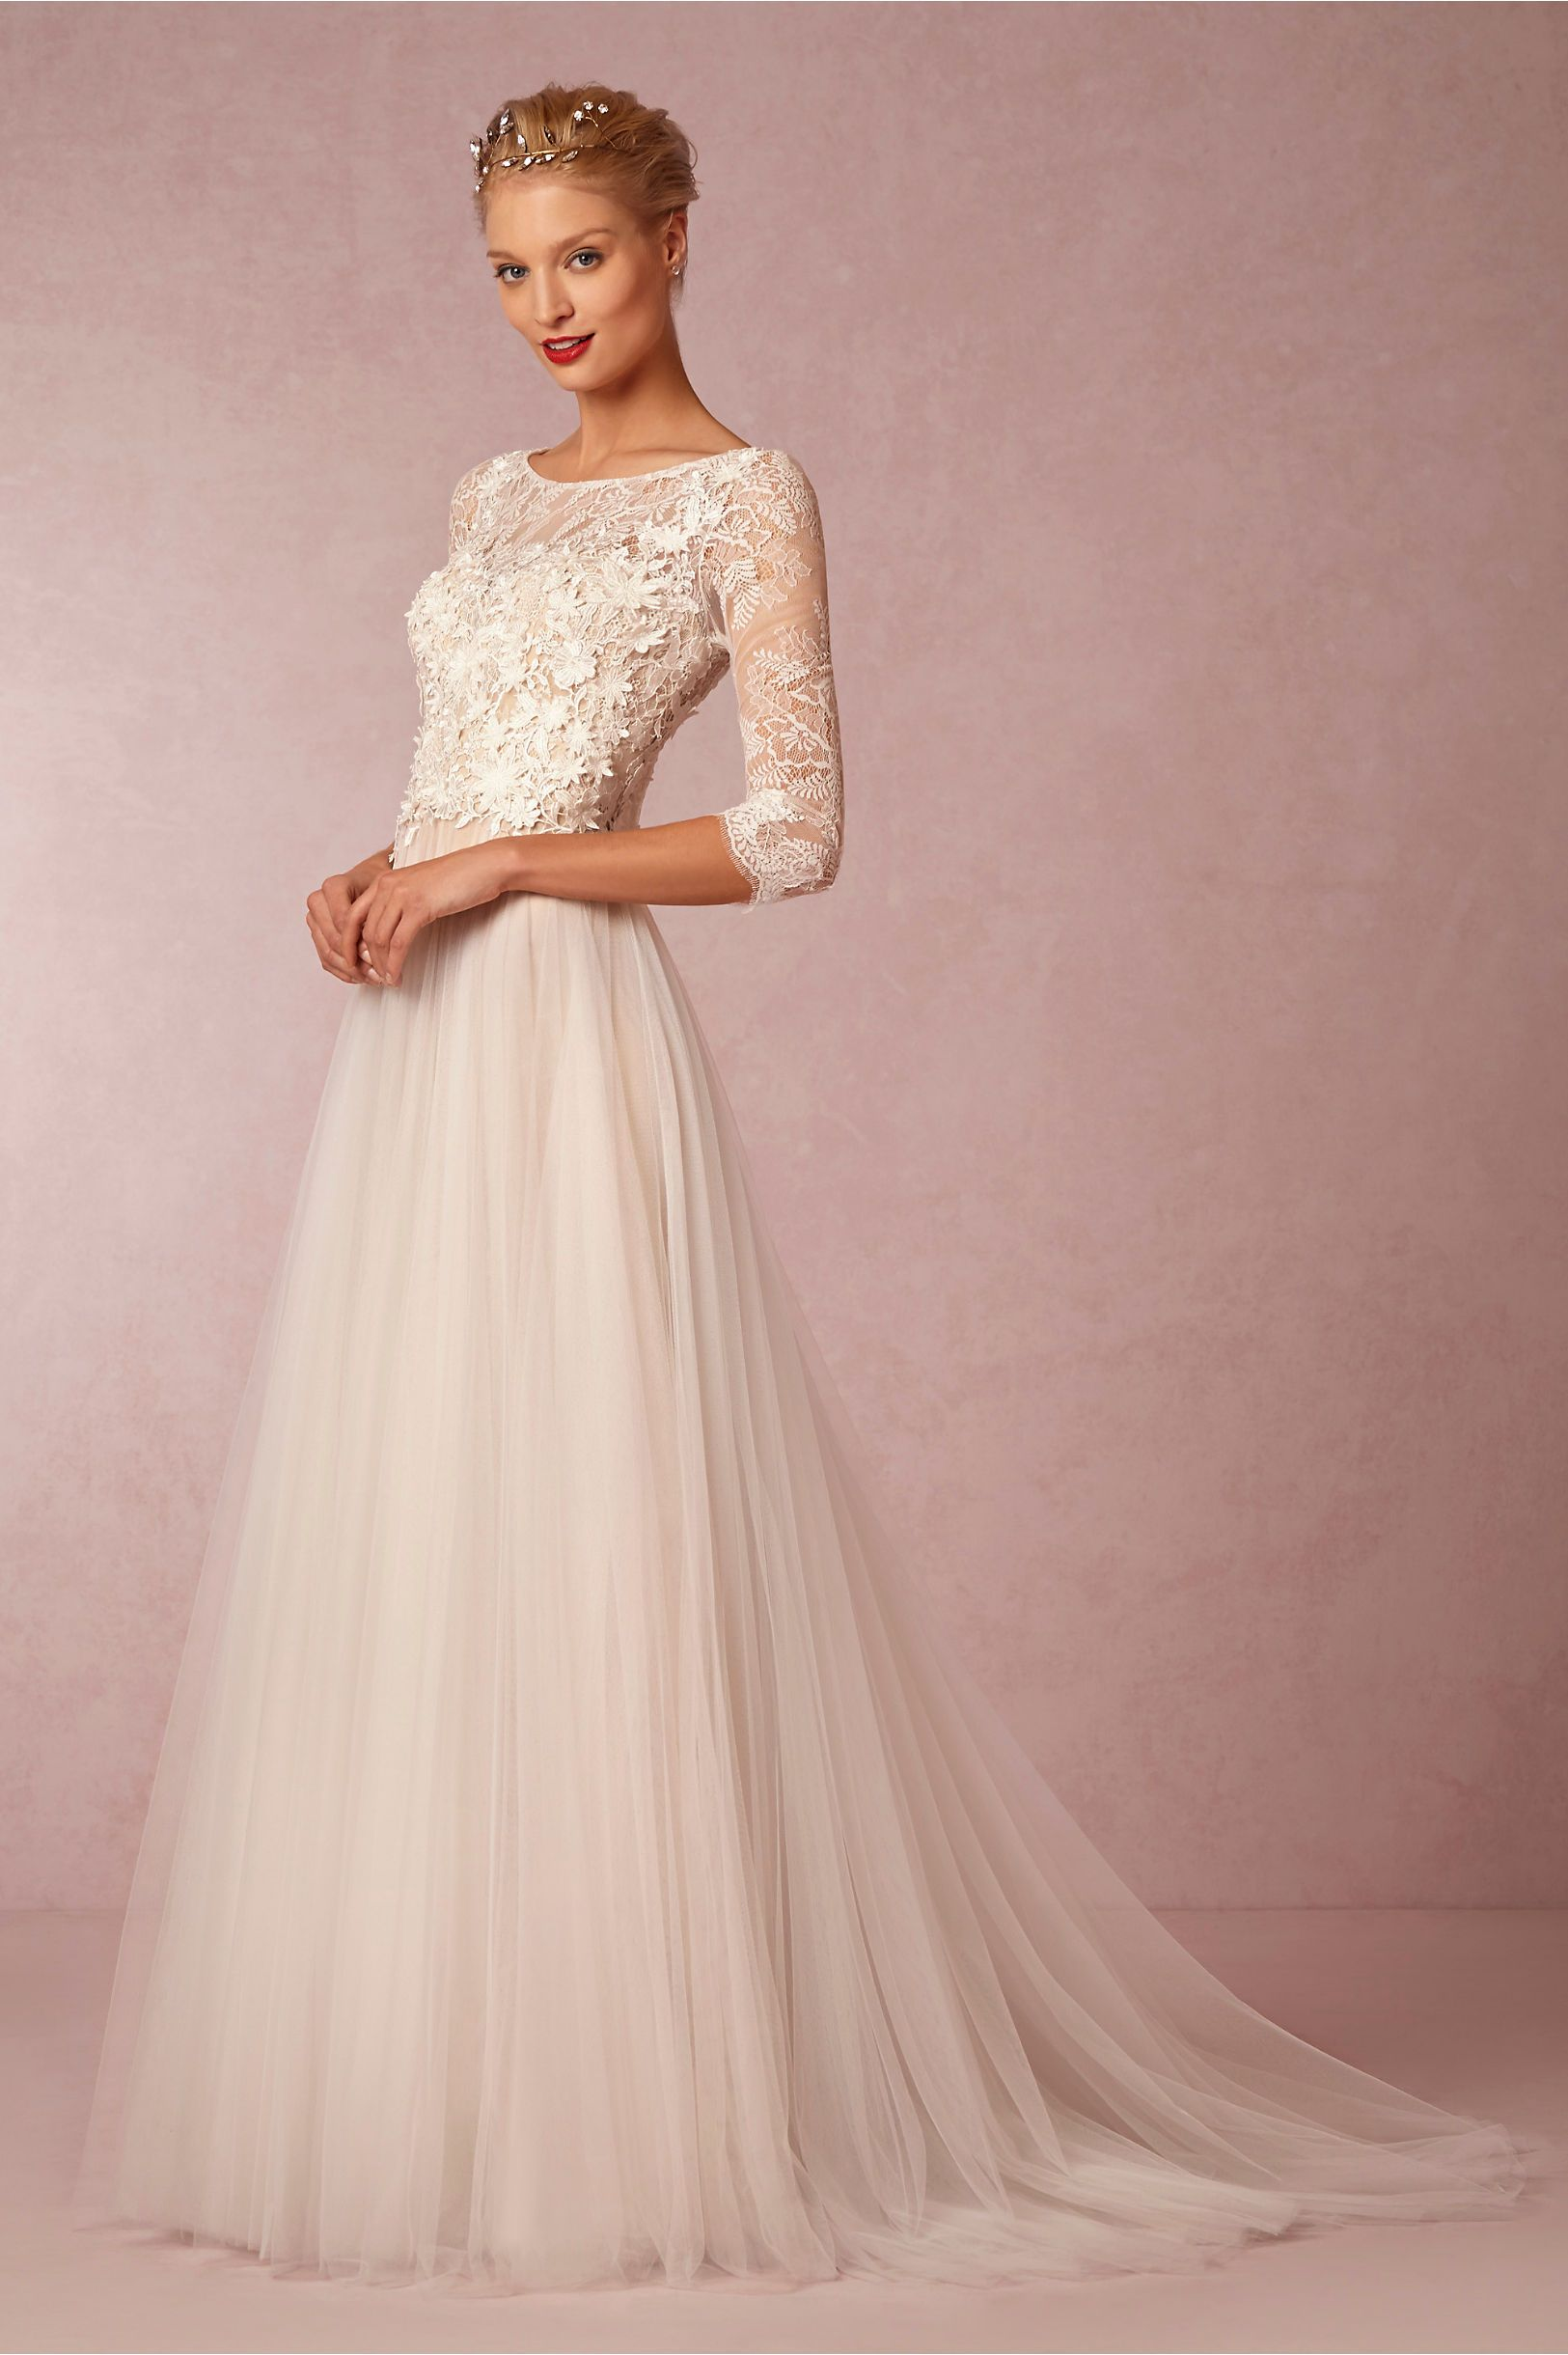 Amelie Gown in New at BHLDN $1640 | Bodas | Pinterest | Vestidos de ...